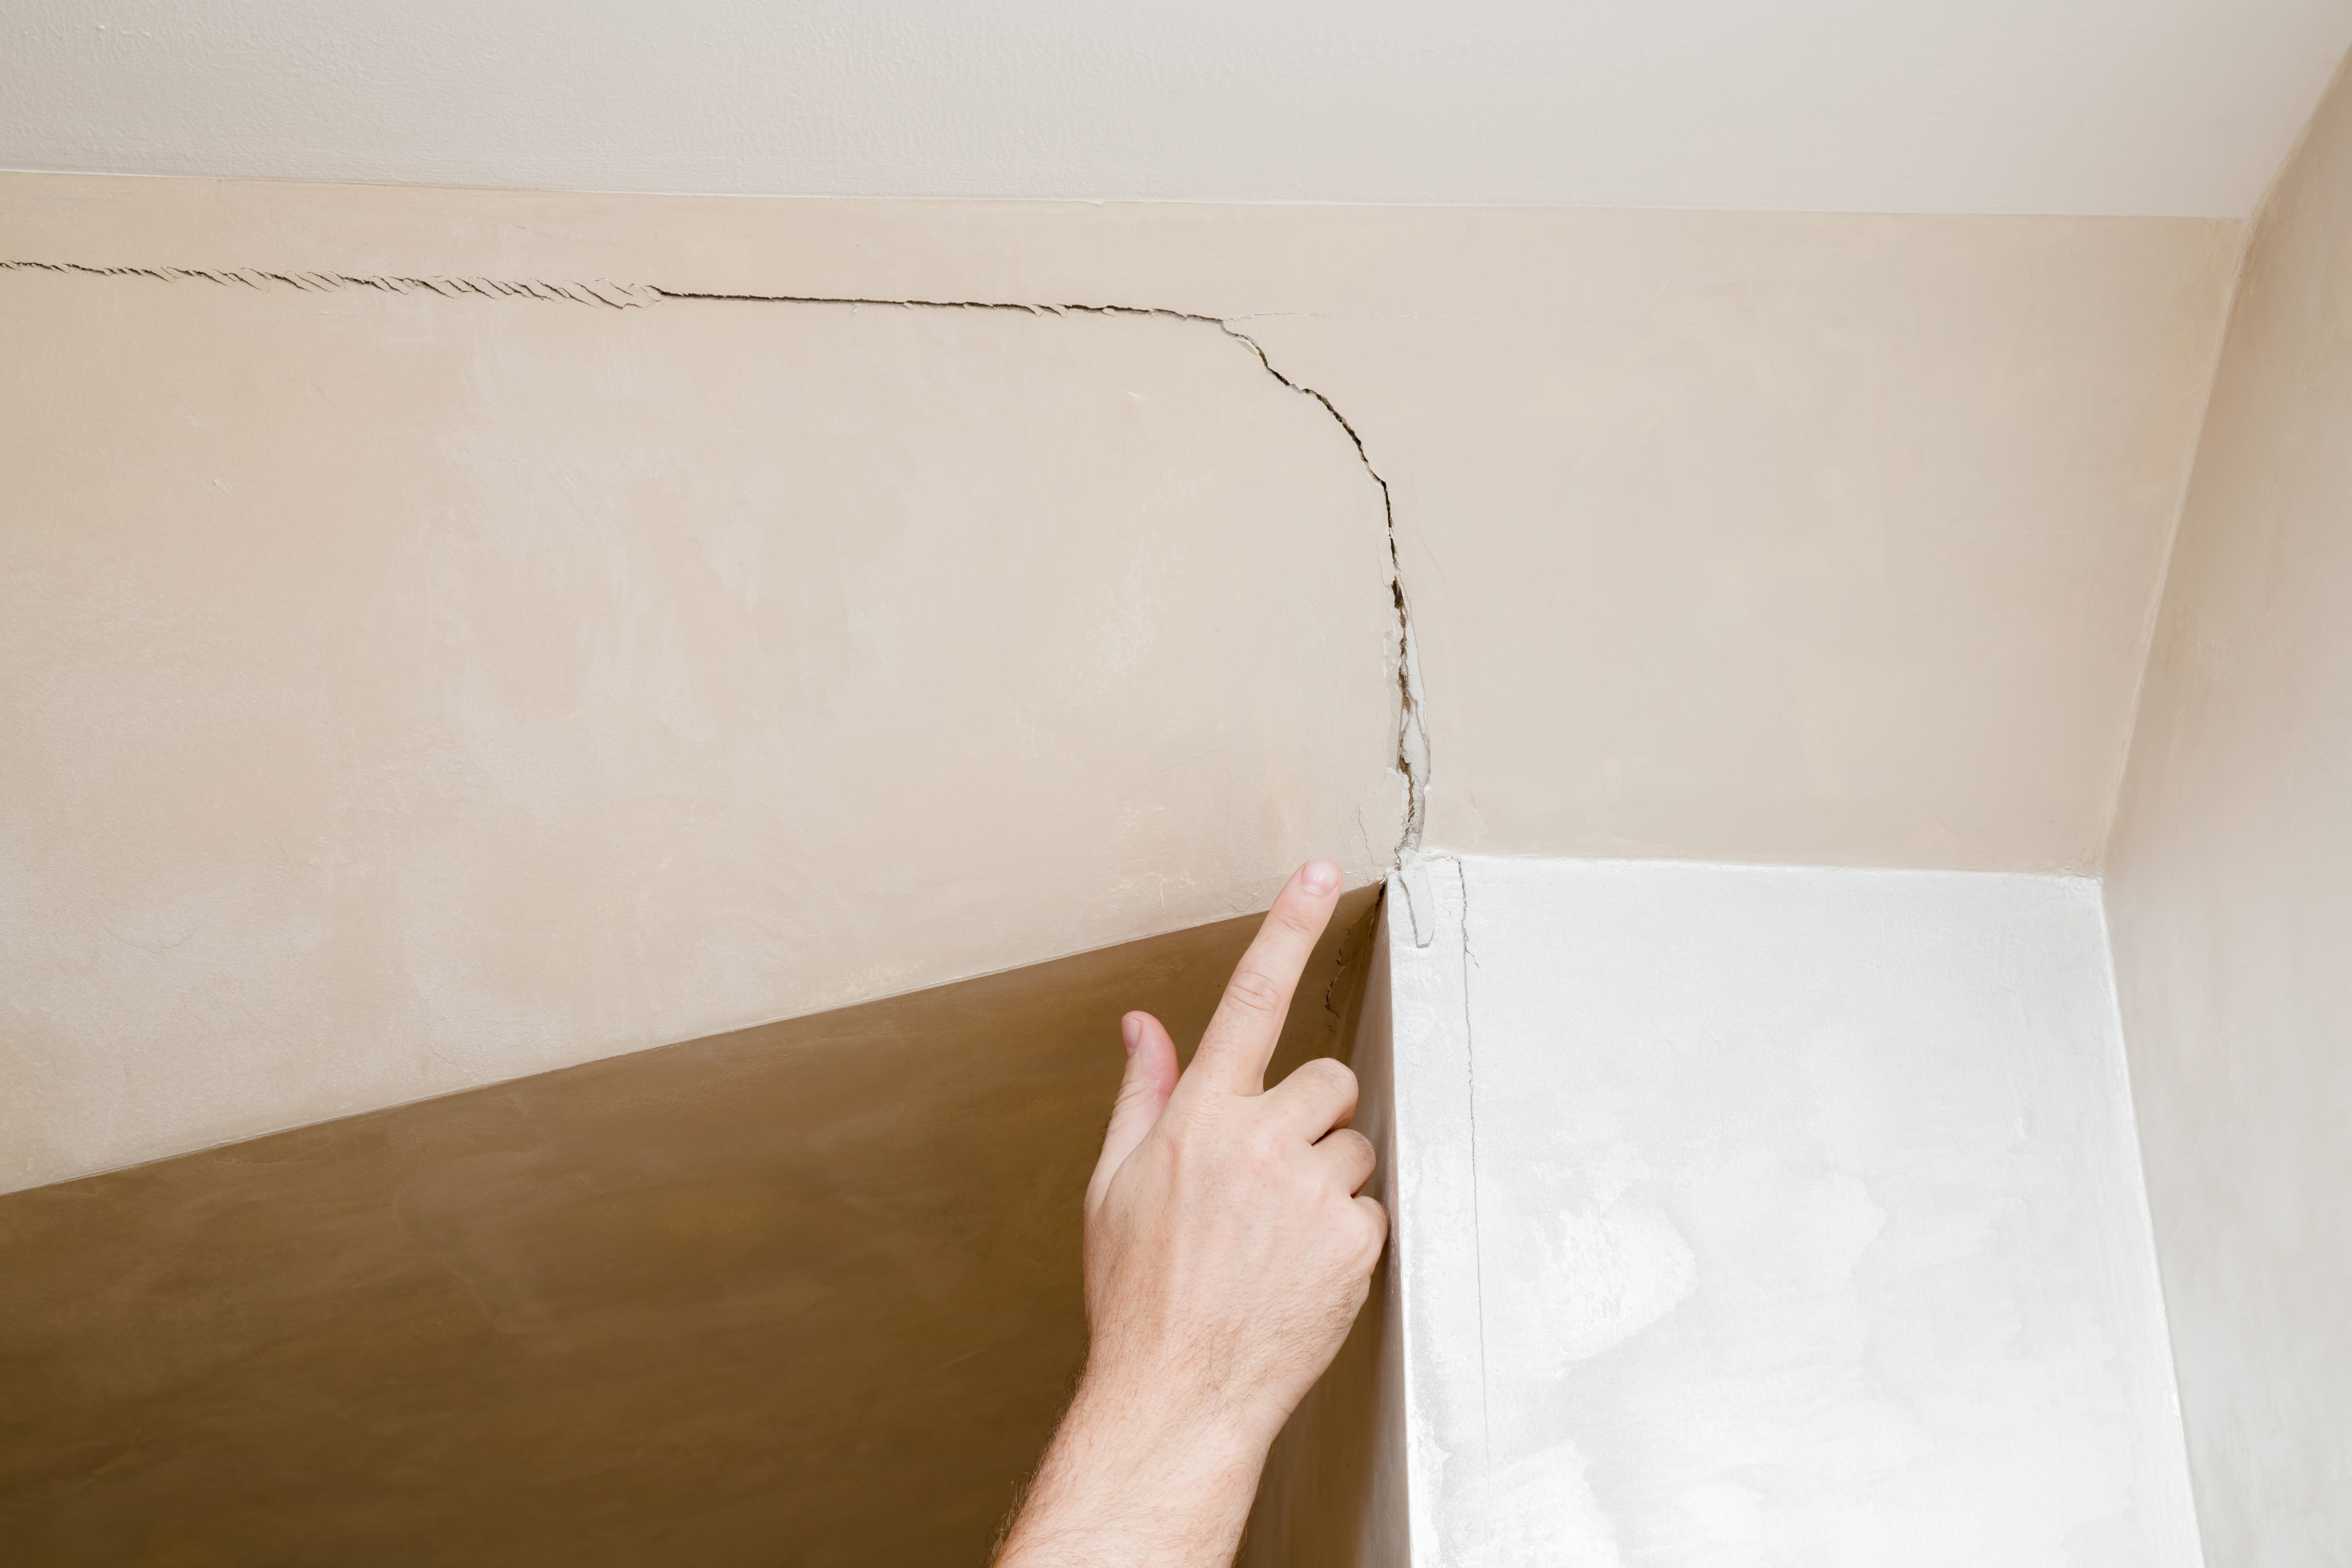 ceiling cracks indicate foundation issues